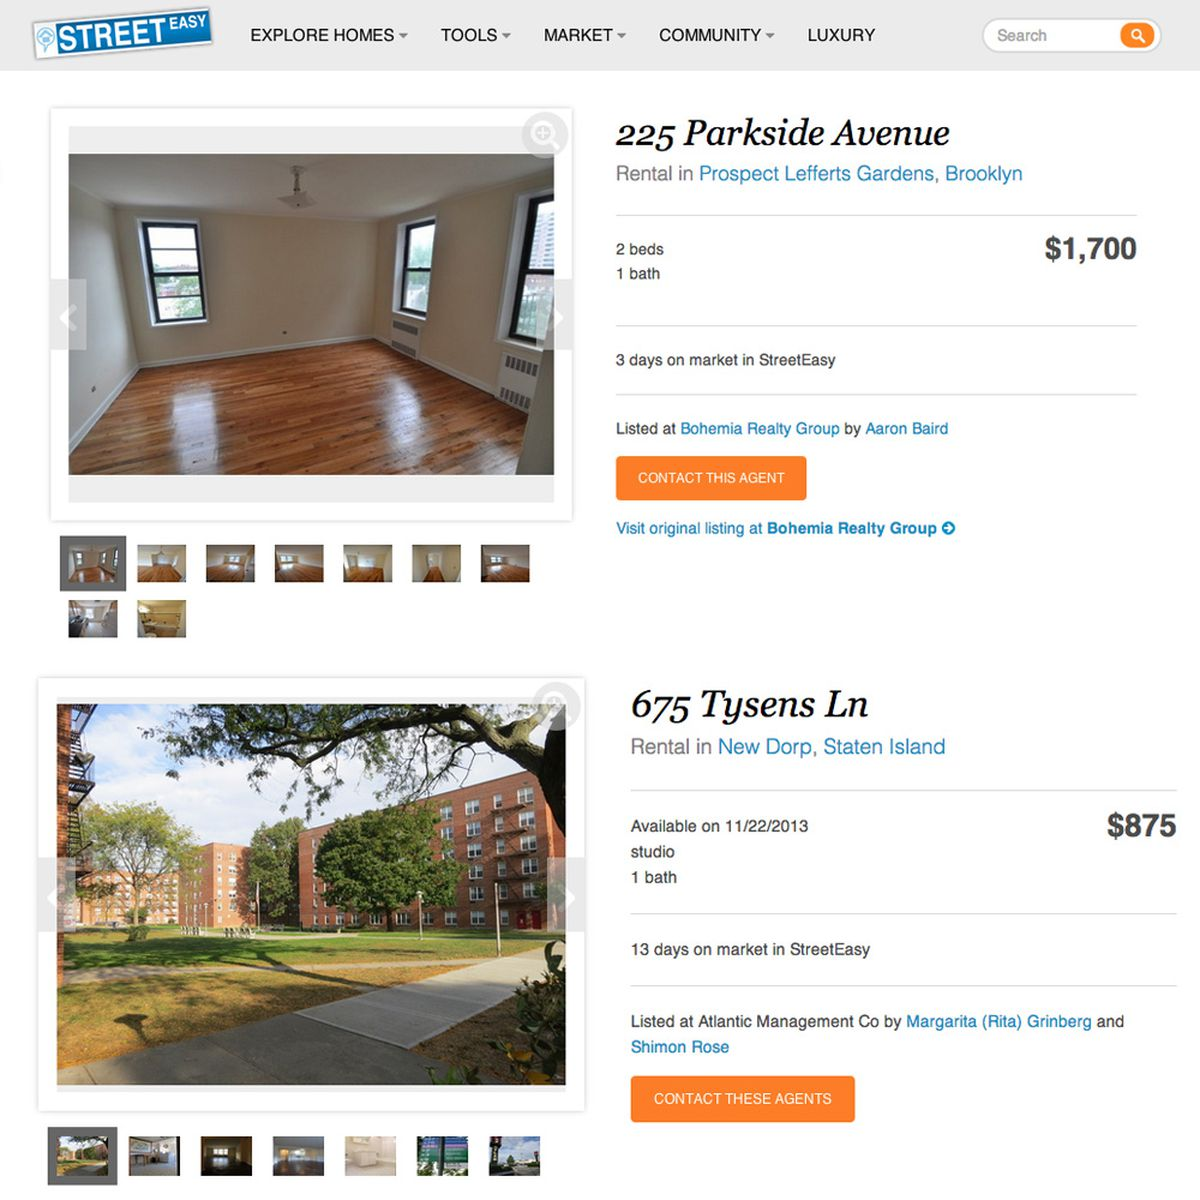 apartments for rent in garden city ny. Today, $50 In 1940 Is Only About $800, Which Won\u0027t Rent You Much New York City, Even If Share An Apartment. Apartments For Garden City Ny